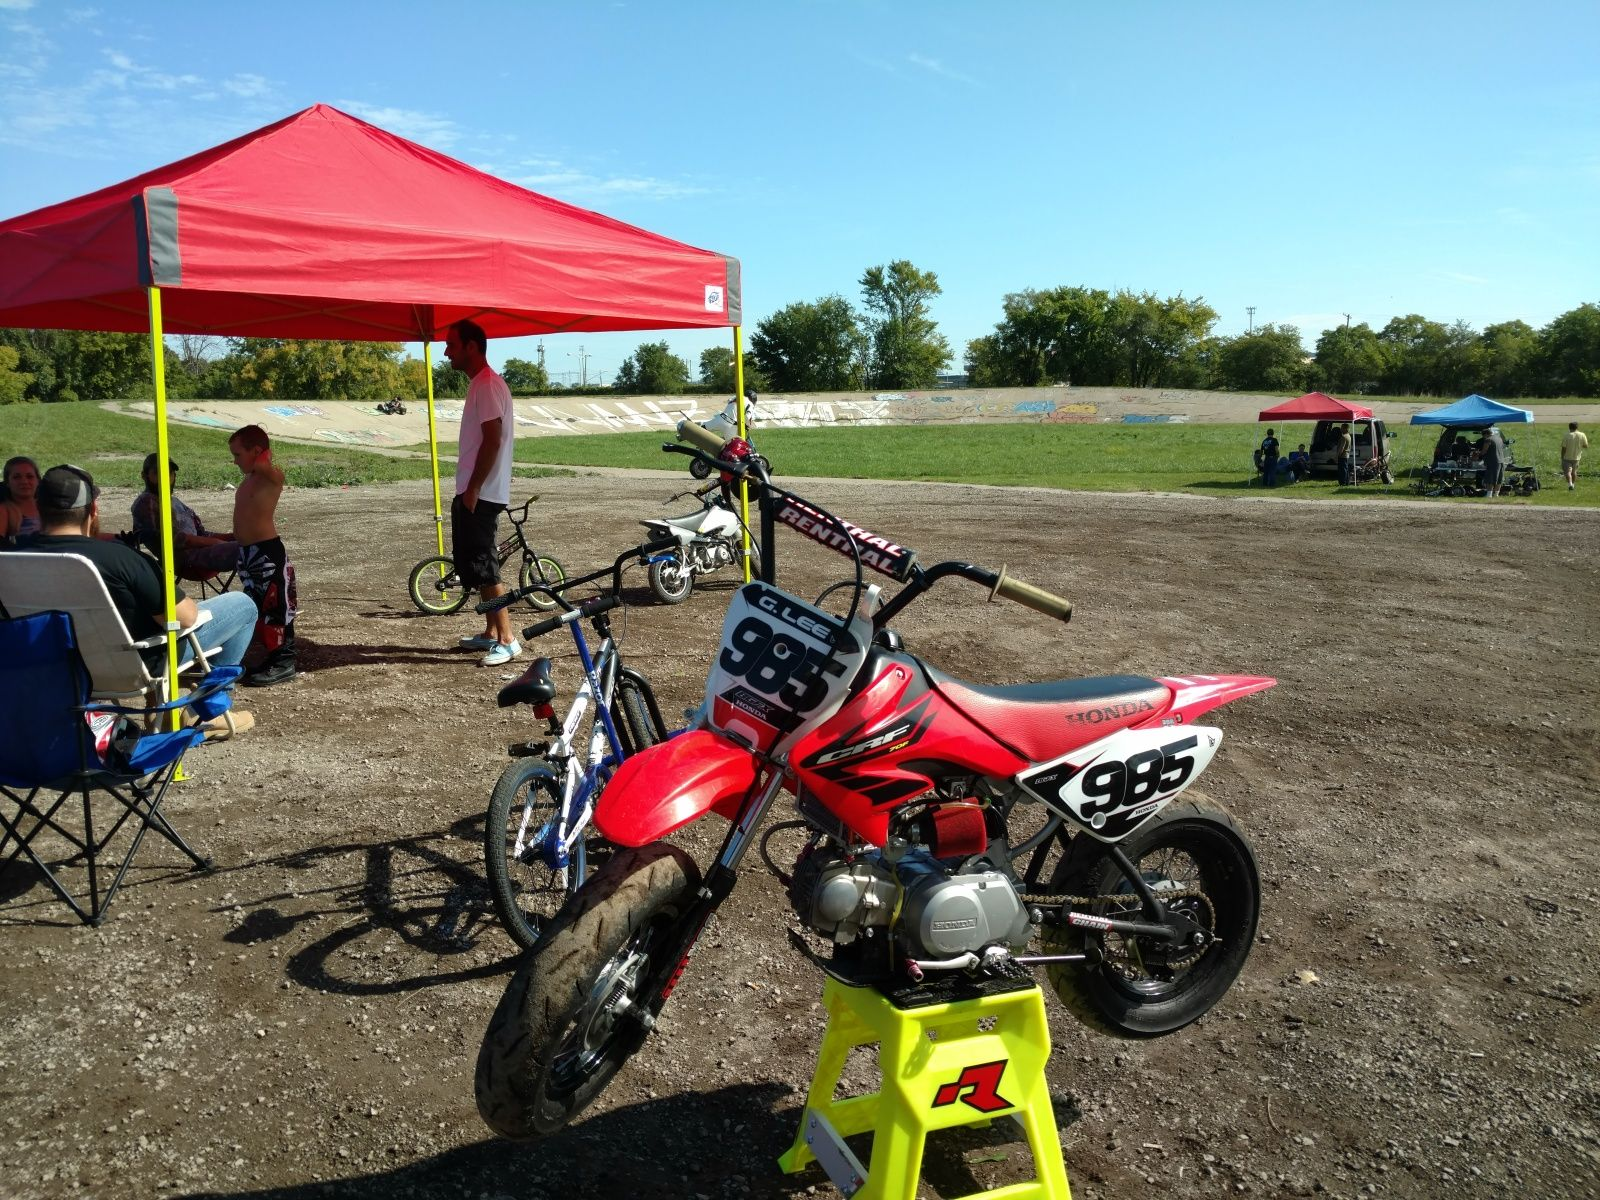 Slow racer frame vs crf70 oem. Differences? | Pit bikes and mini\'s ...